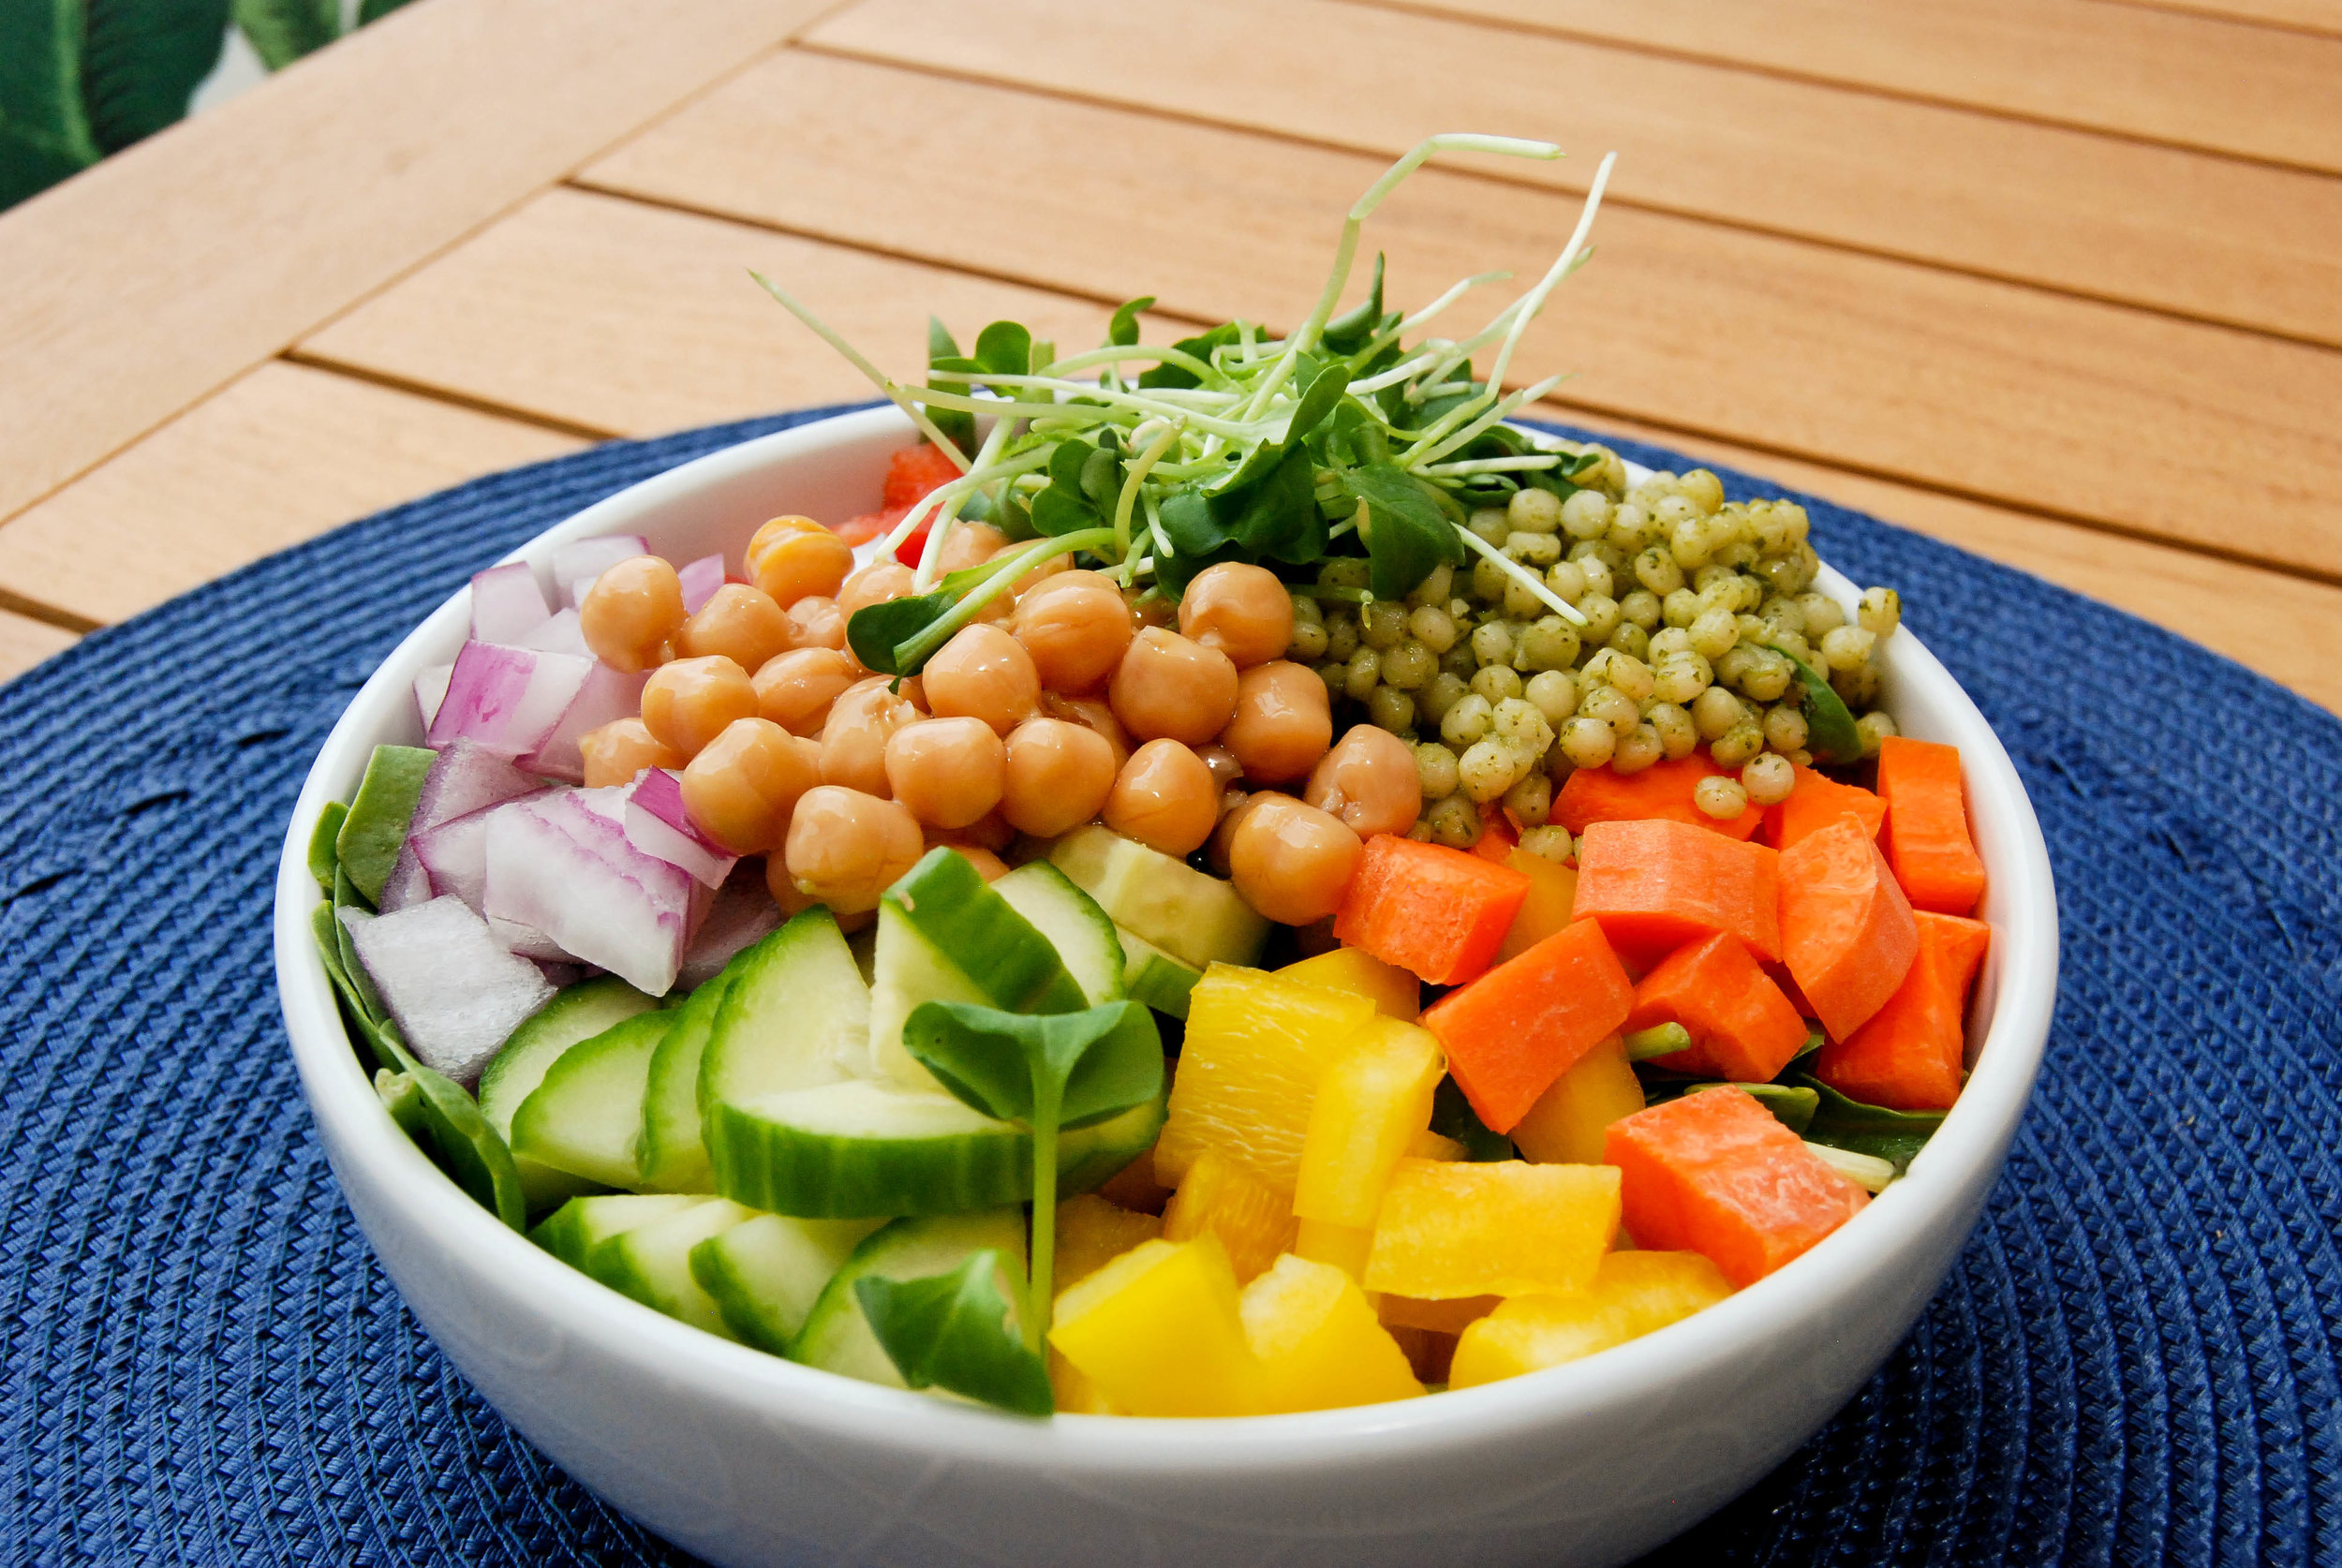 Chickpea And Veggie Salad With Dill Dressing   Front Range Fed